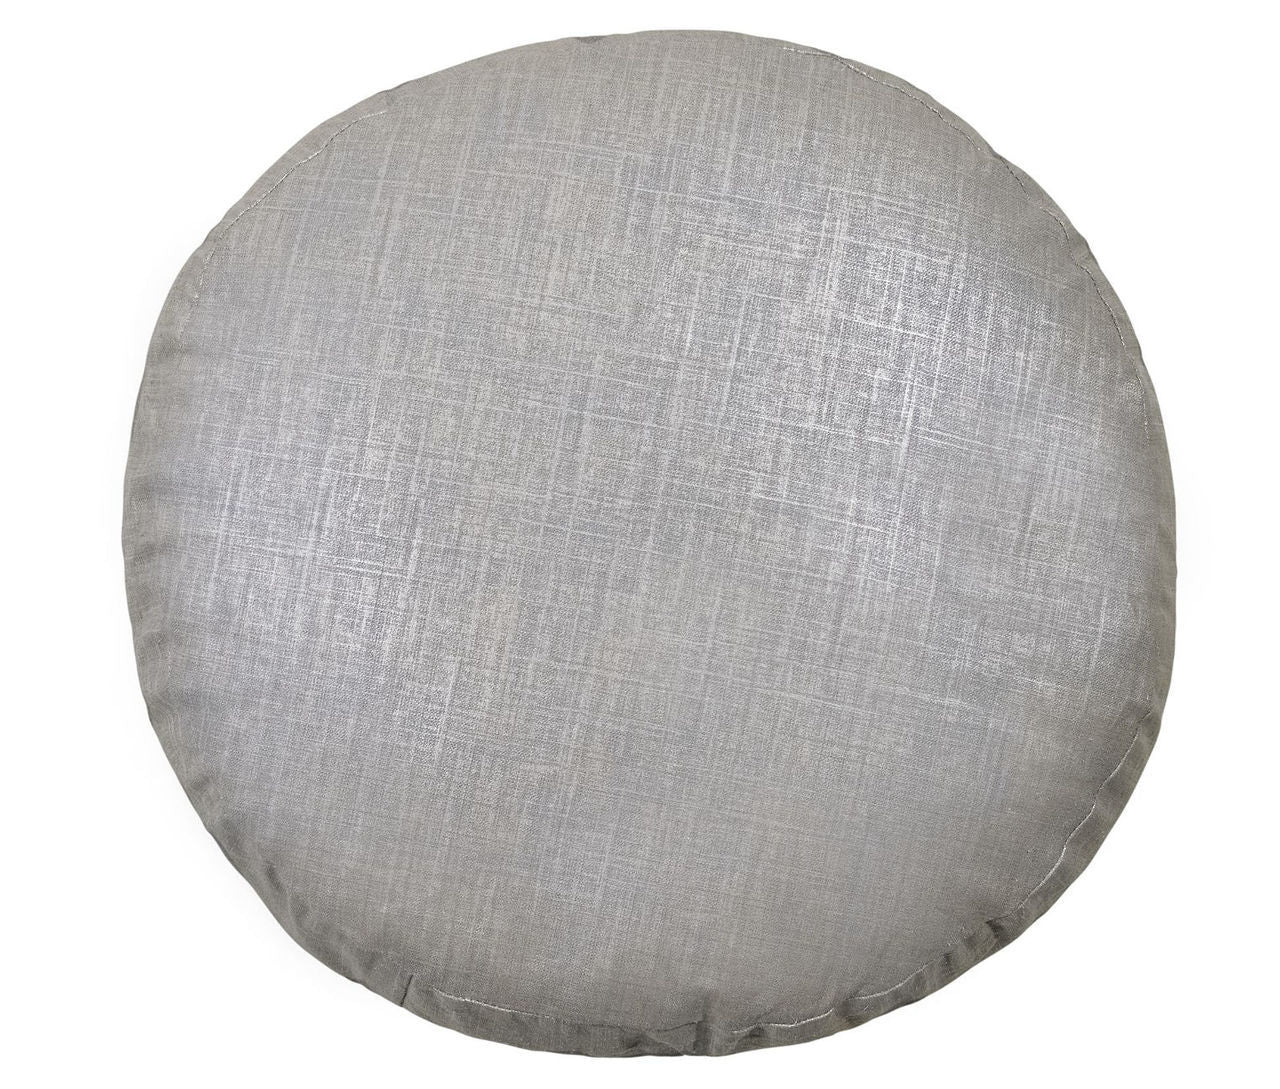 "Radiance Steel 18"" Pancake Pillow Mystic Valley Traders - unique linens online"